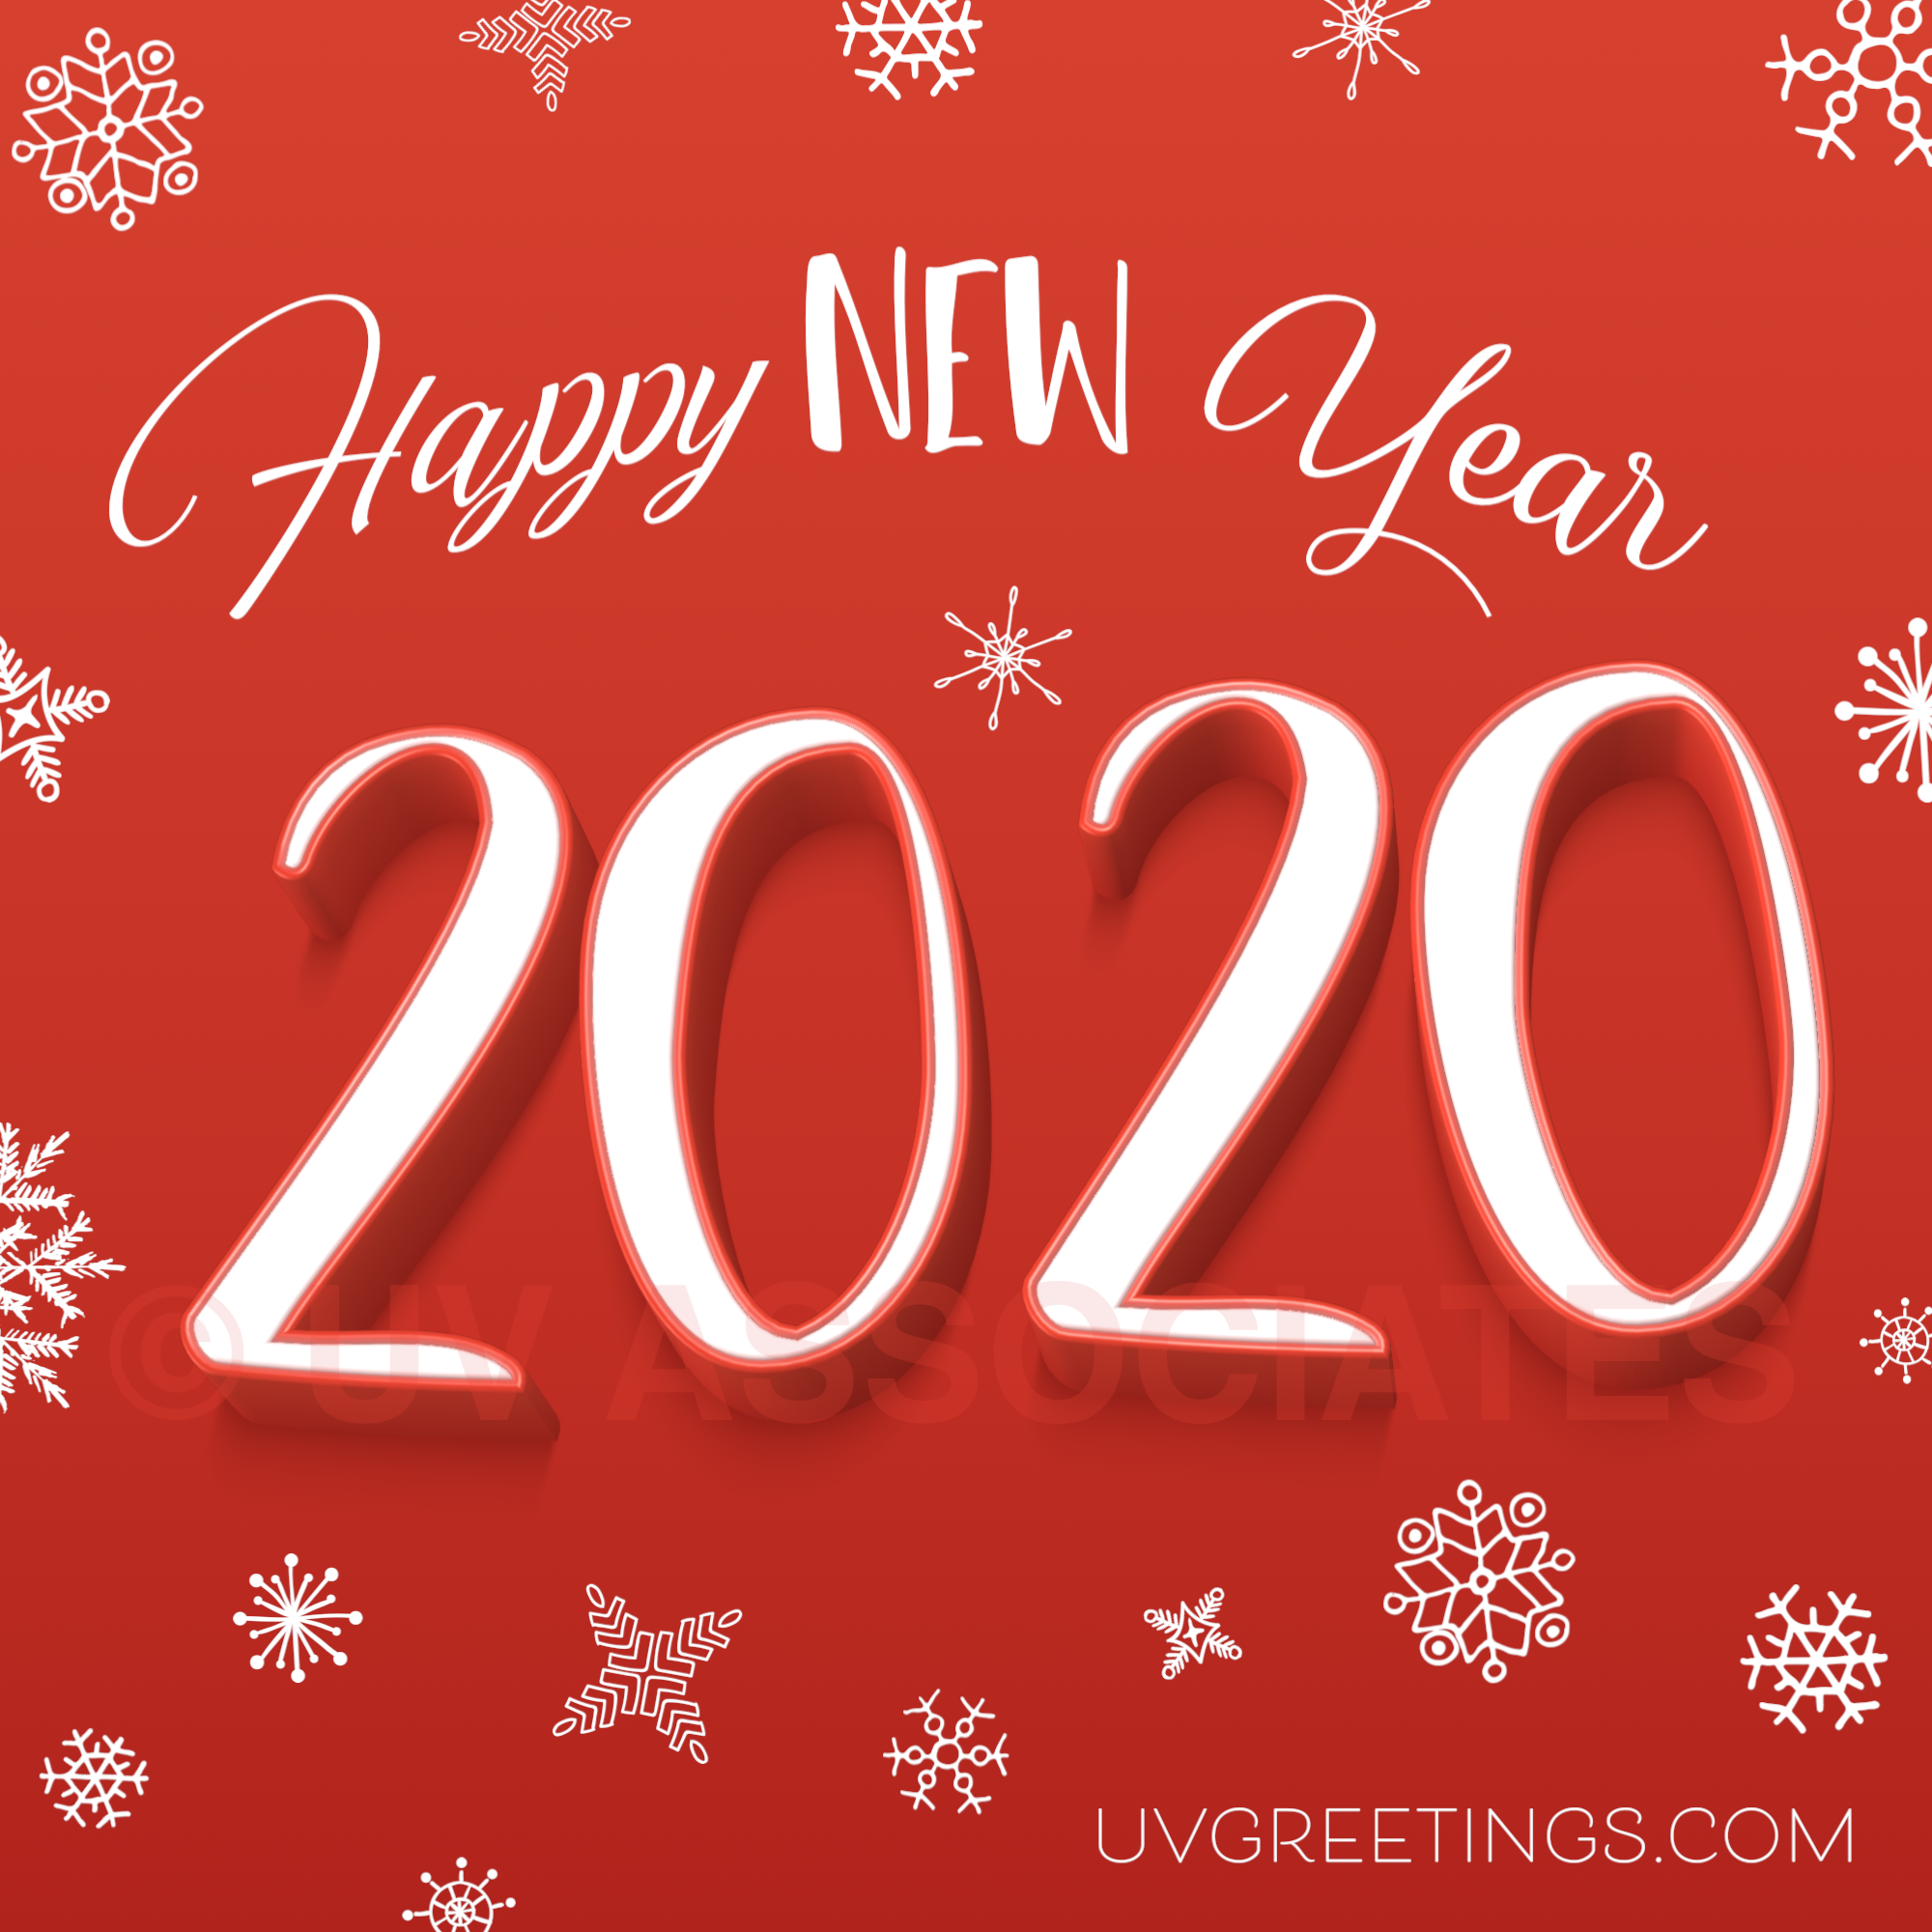 Snowflakes and a red Background and a 3d version of digits 2020!